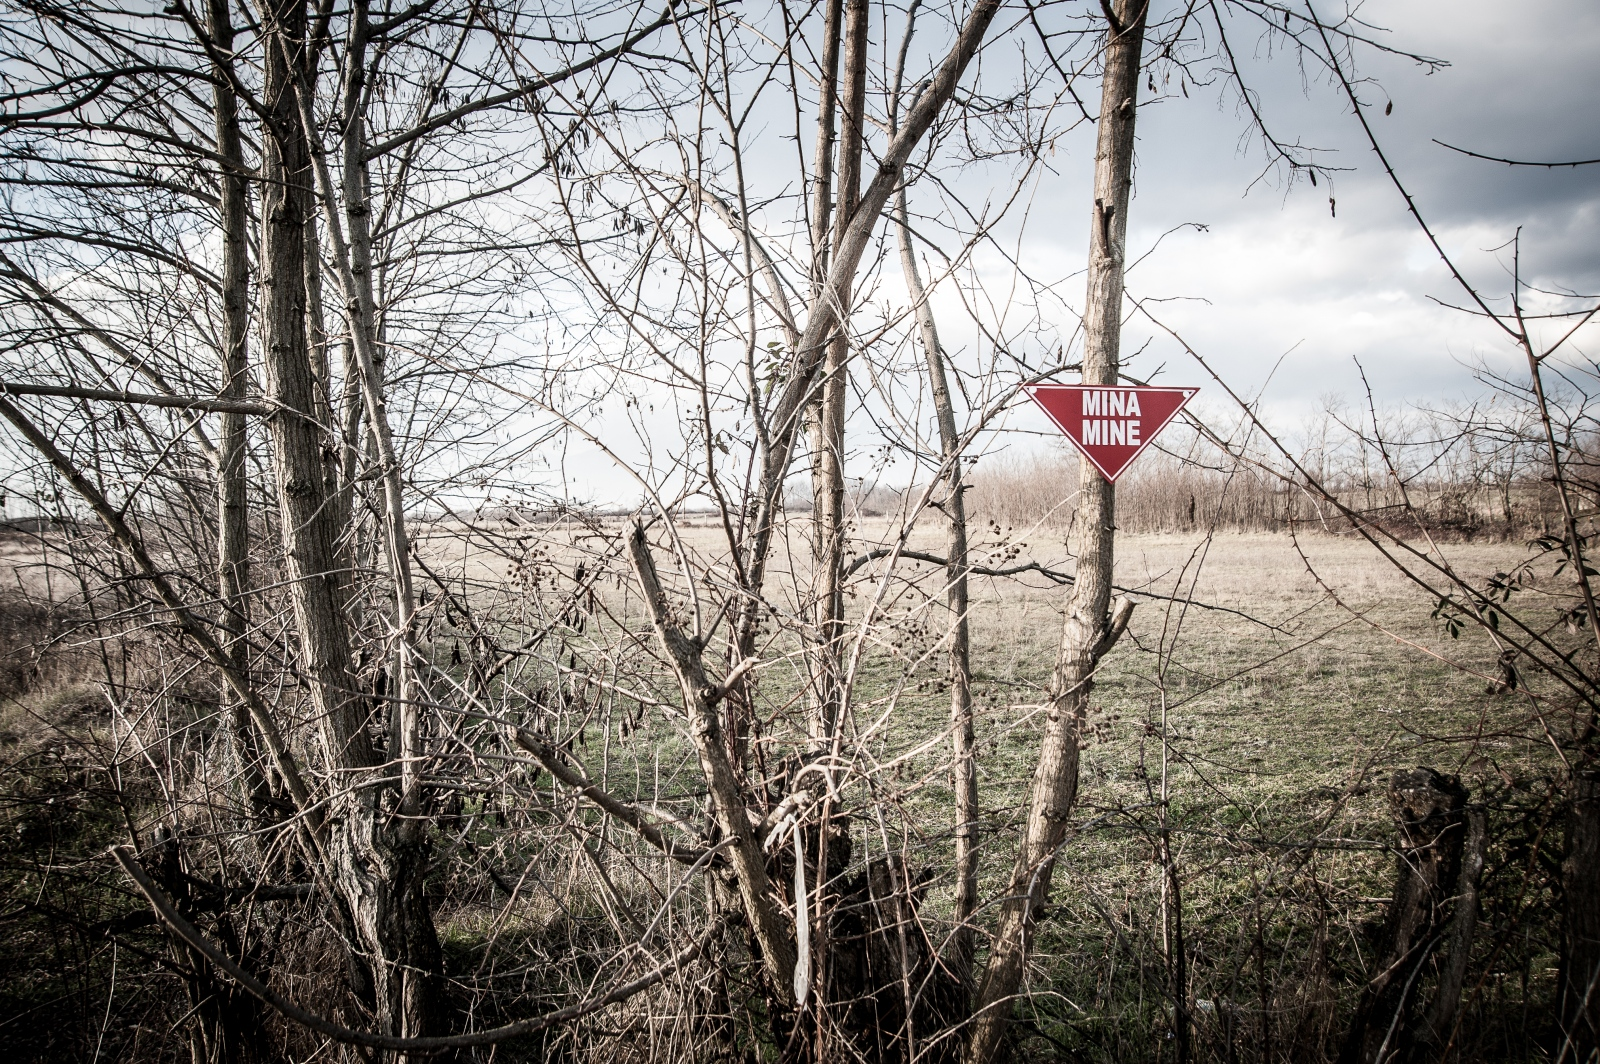 A sign indicates the landmine presence among the fields. December 2016.